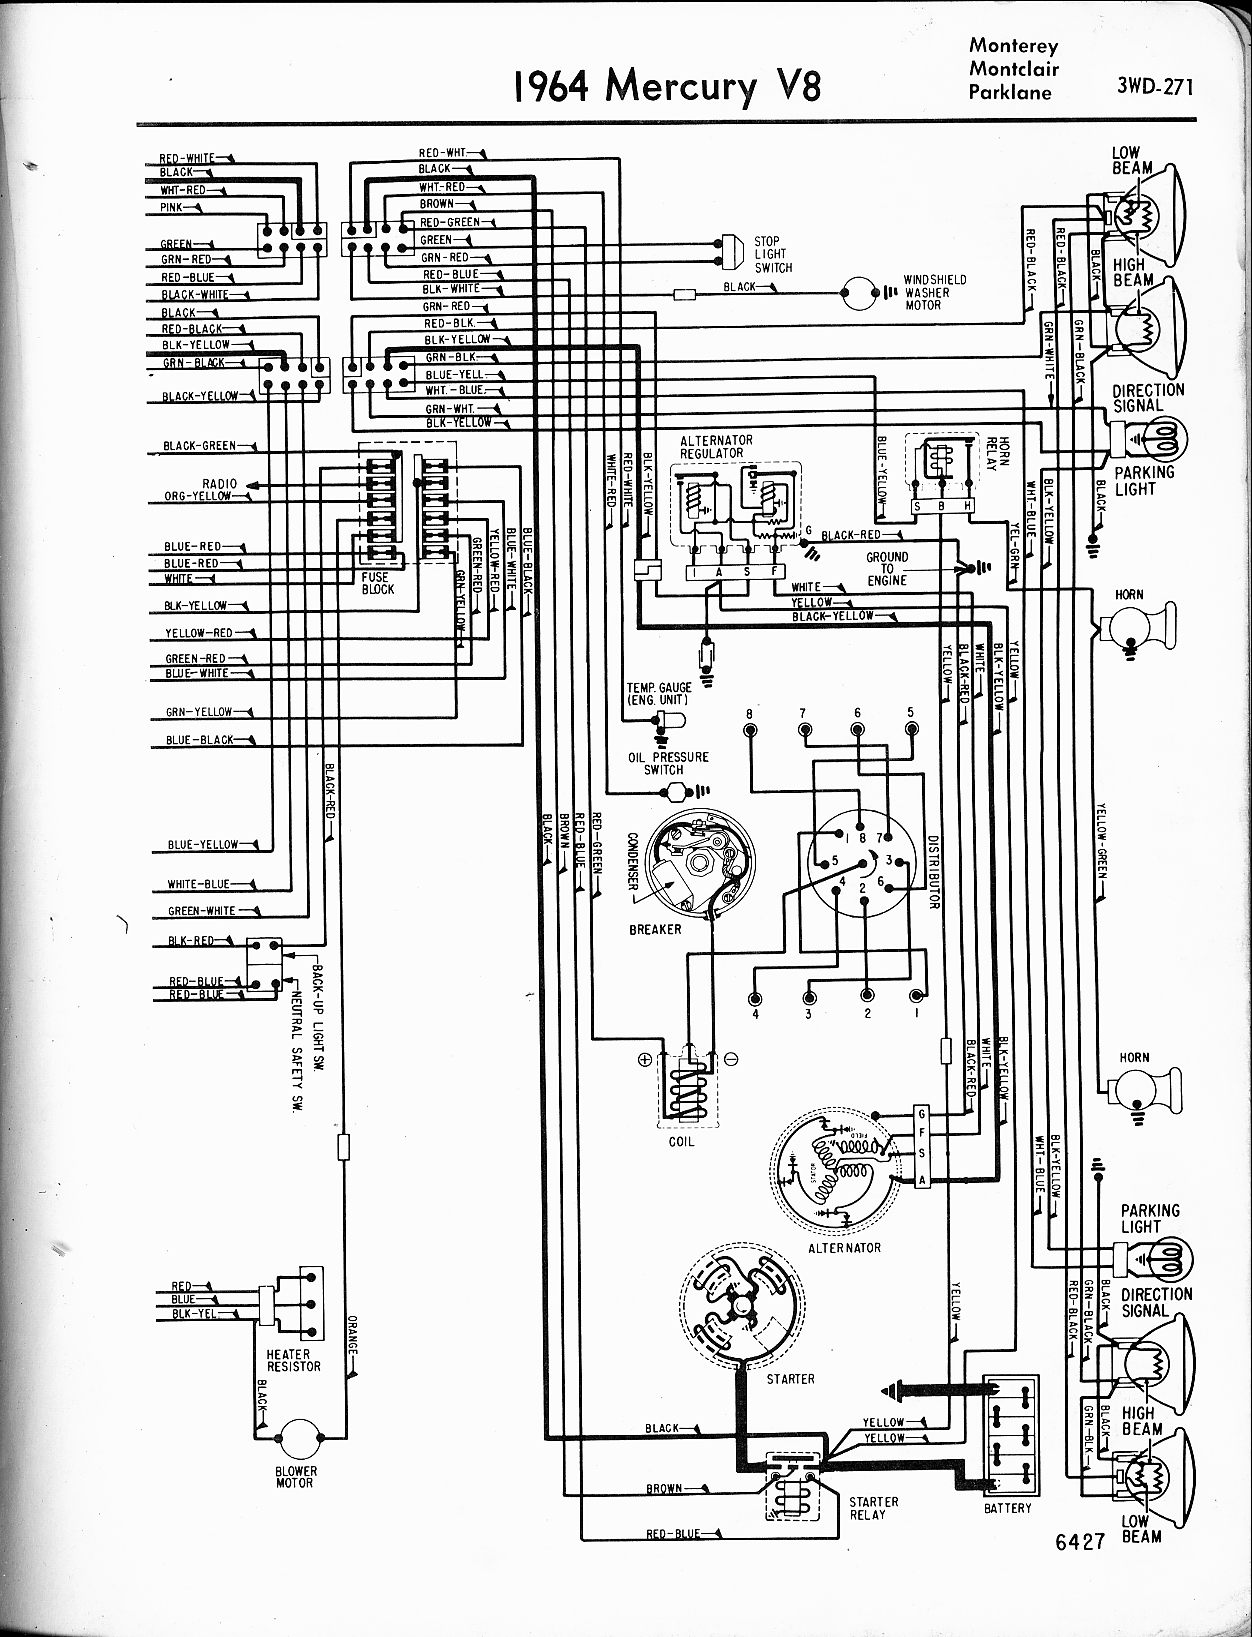 MWire5765 271 mercury wiring diagrams the old car manual project 1965 Thunderbird Window Regulator at virtualis.co